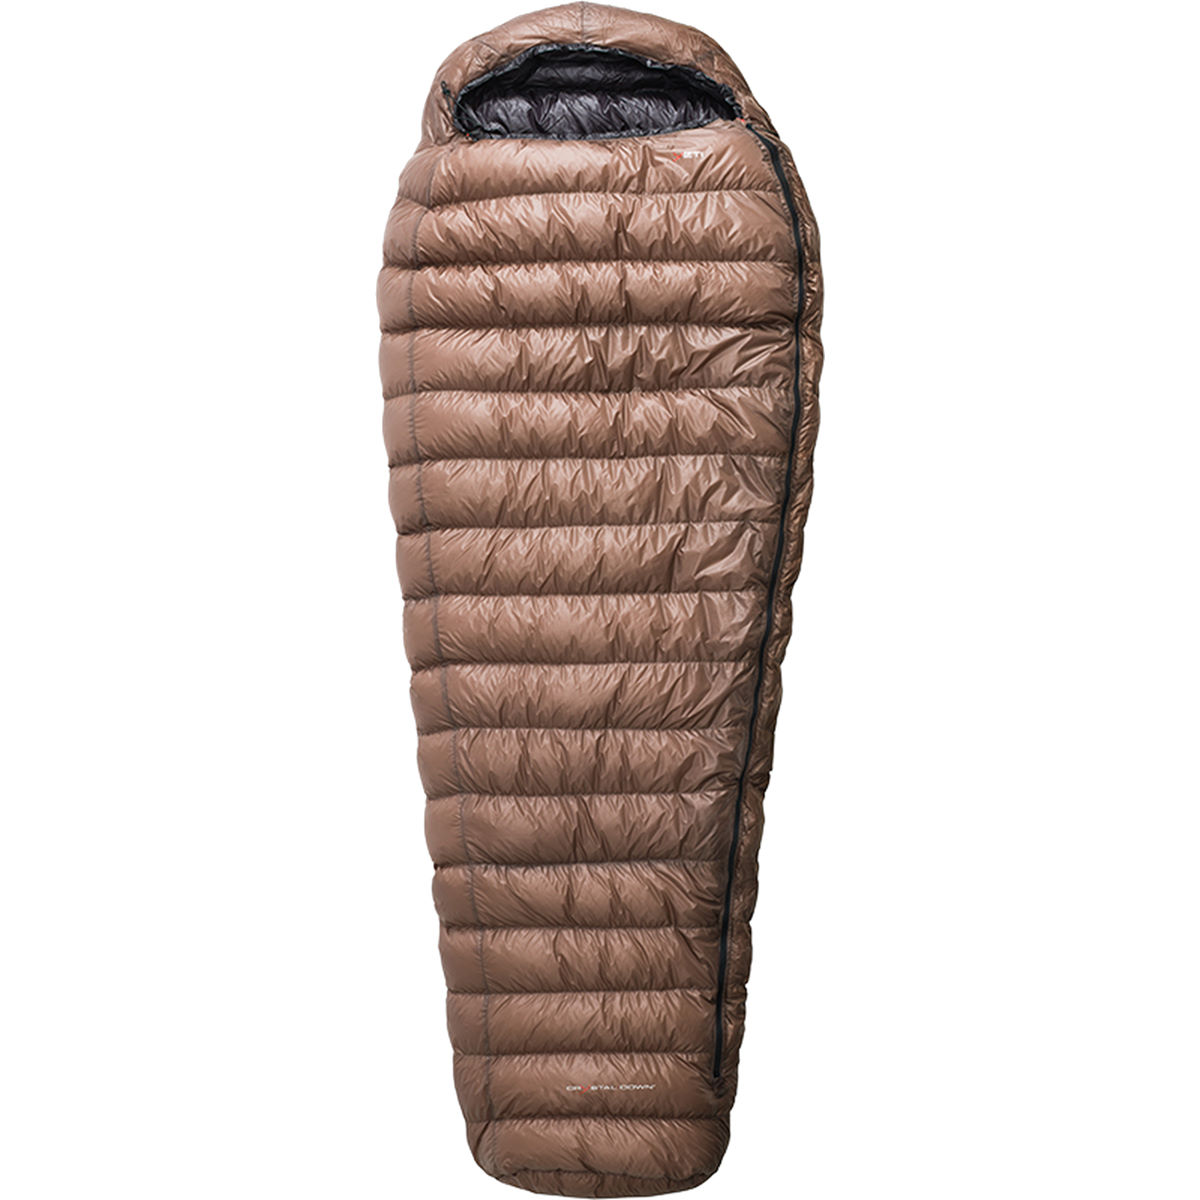 Yeti Passion Three Sleeping Bag - Sacos de dormir